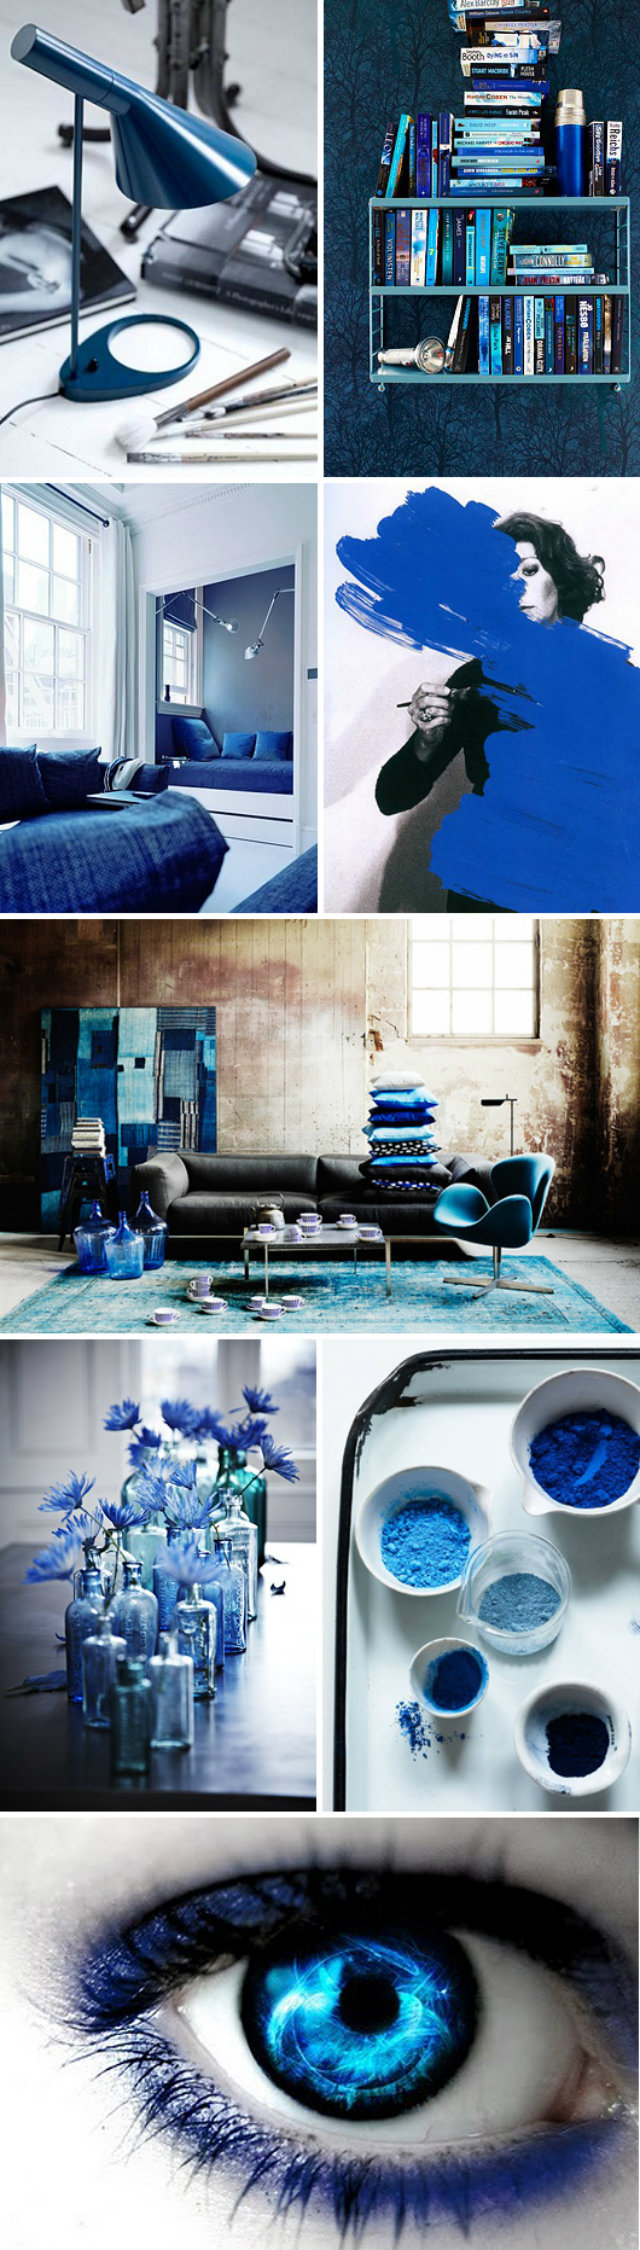 Ocean Deep Blue Mood Board  Deep Ocean Blue Mood Board Inspiration Mood Board Blue Books Lamps